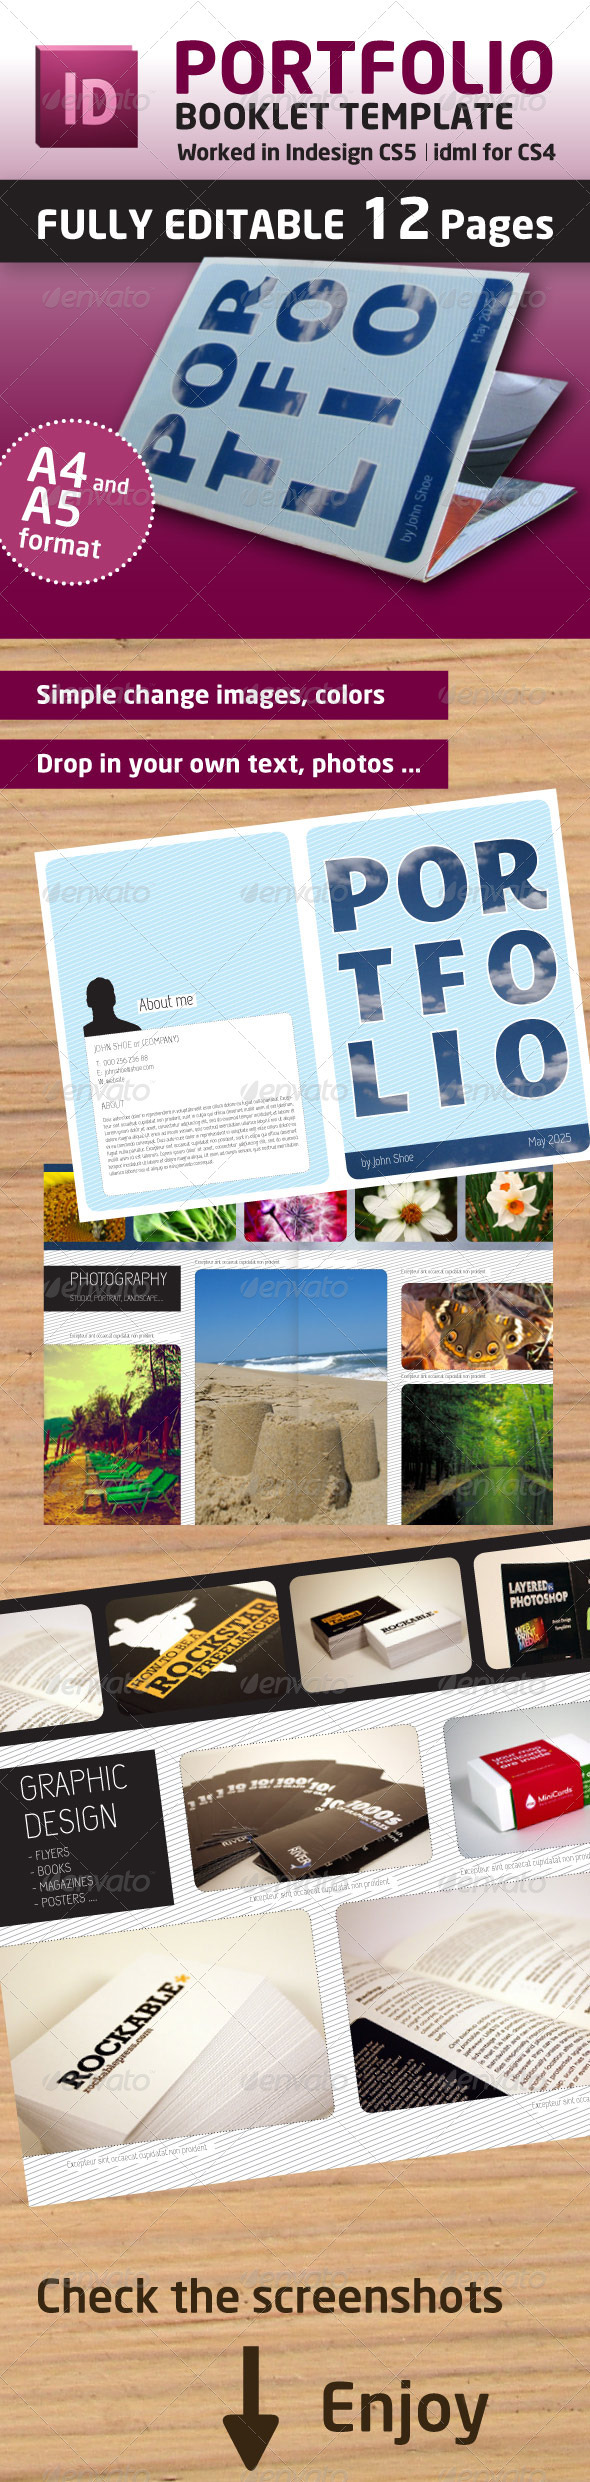 Portfolio Booklet A4 and A5 Format (12 Pages) - Portfolio Brochures